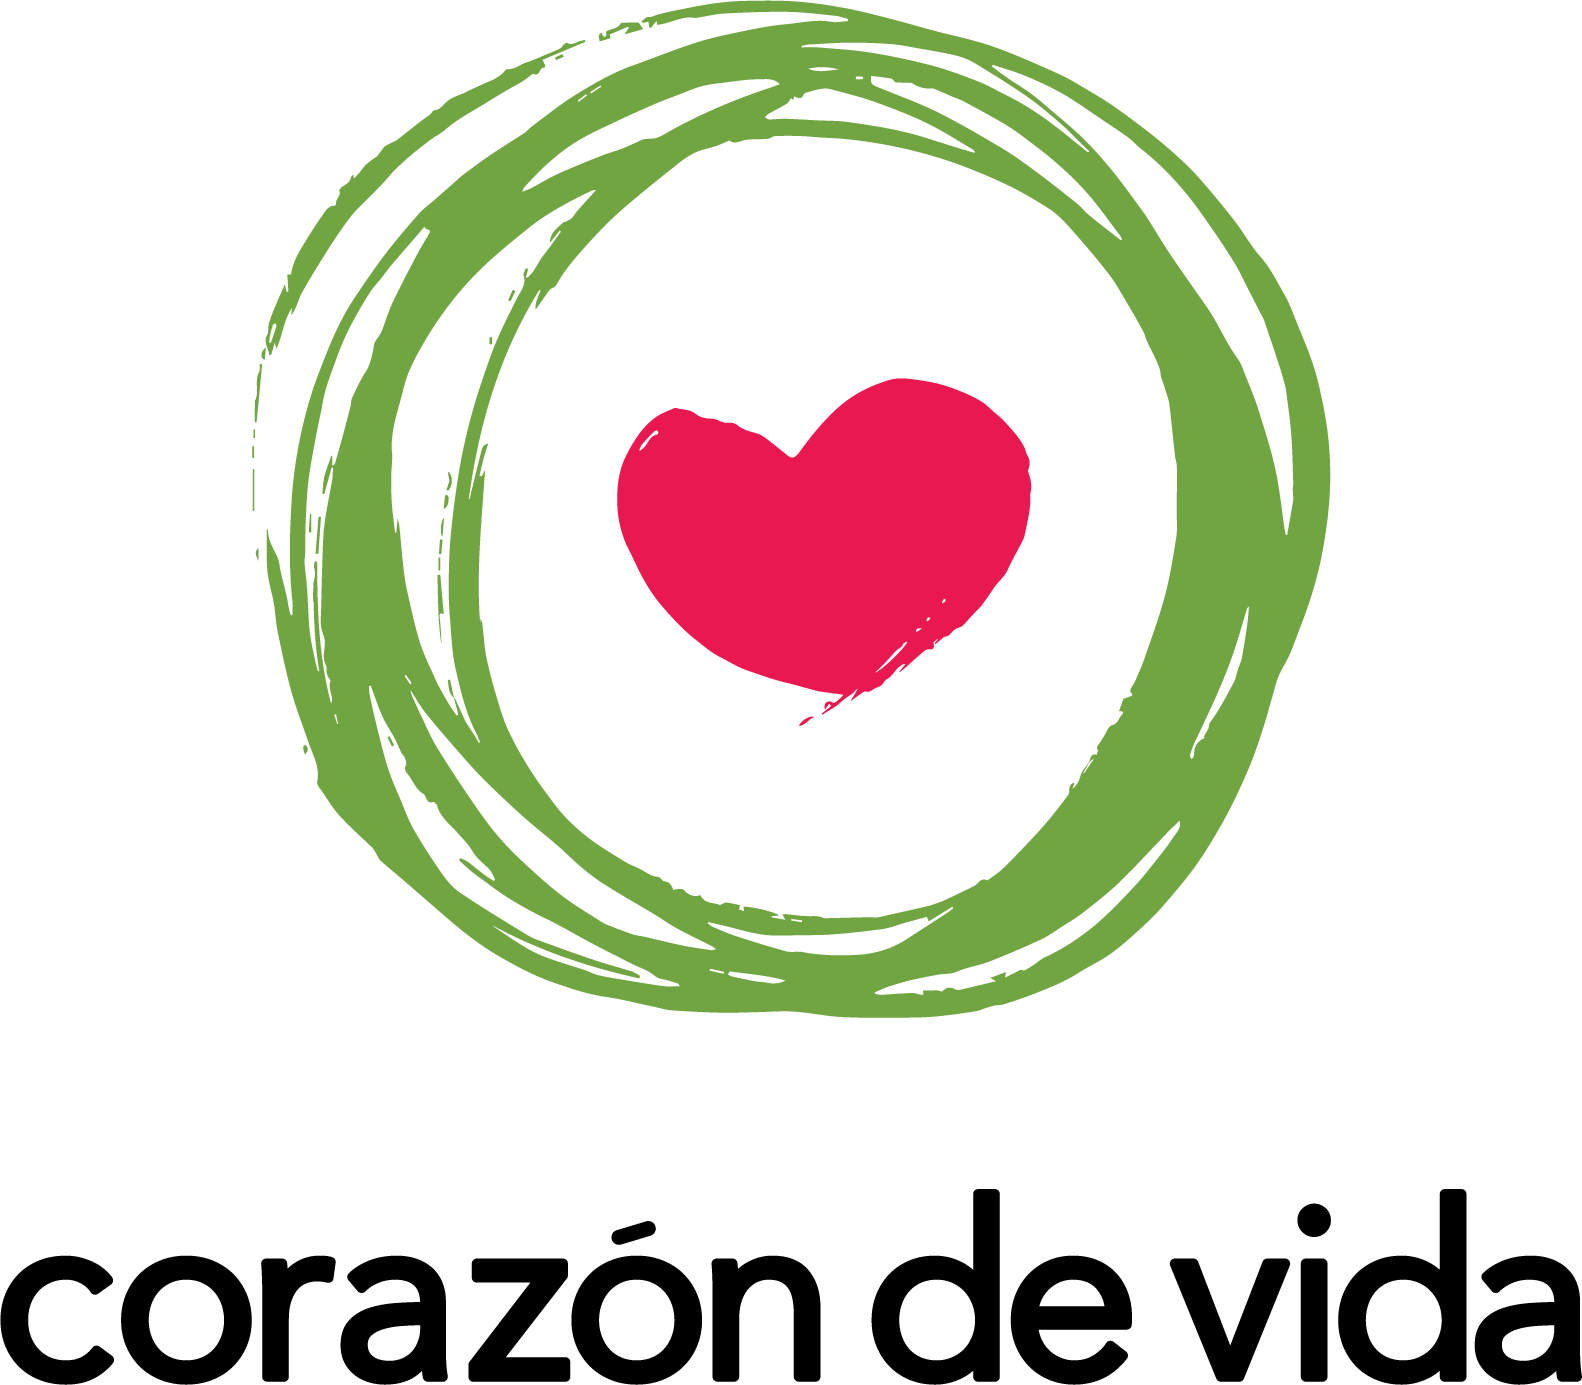 Image result for corazon de vida logo